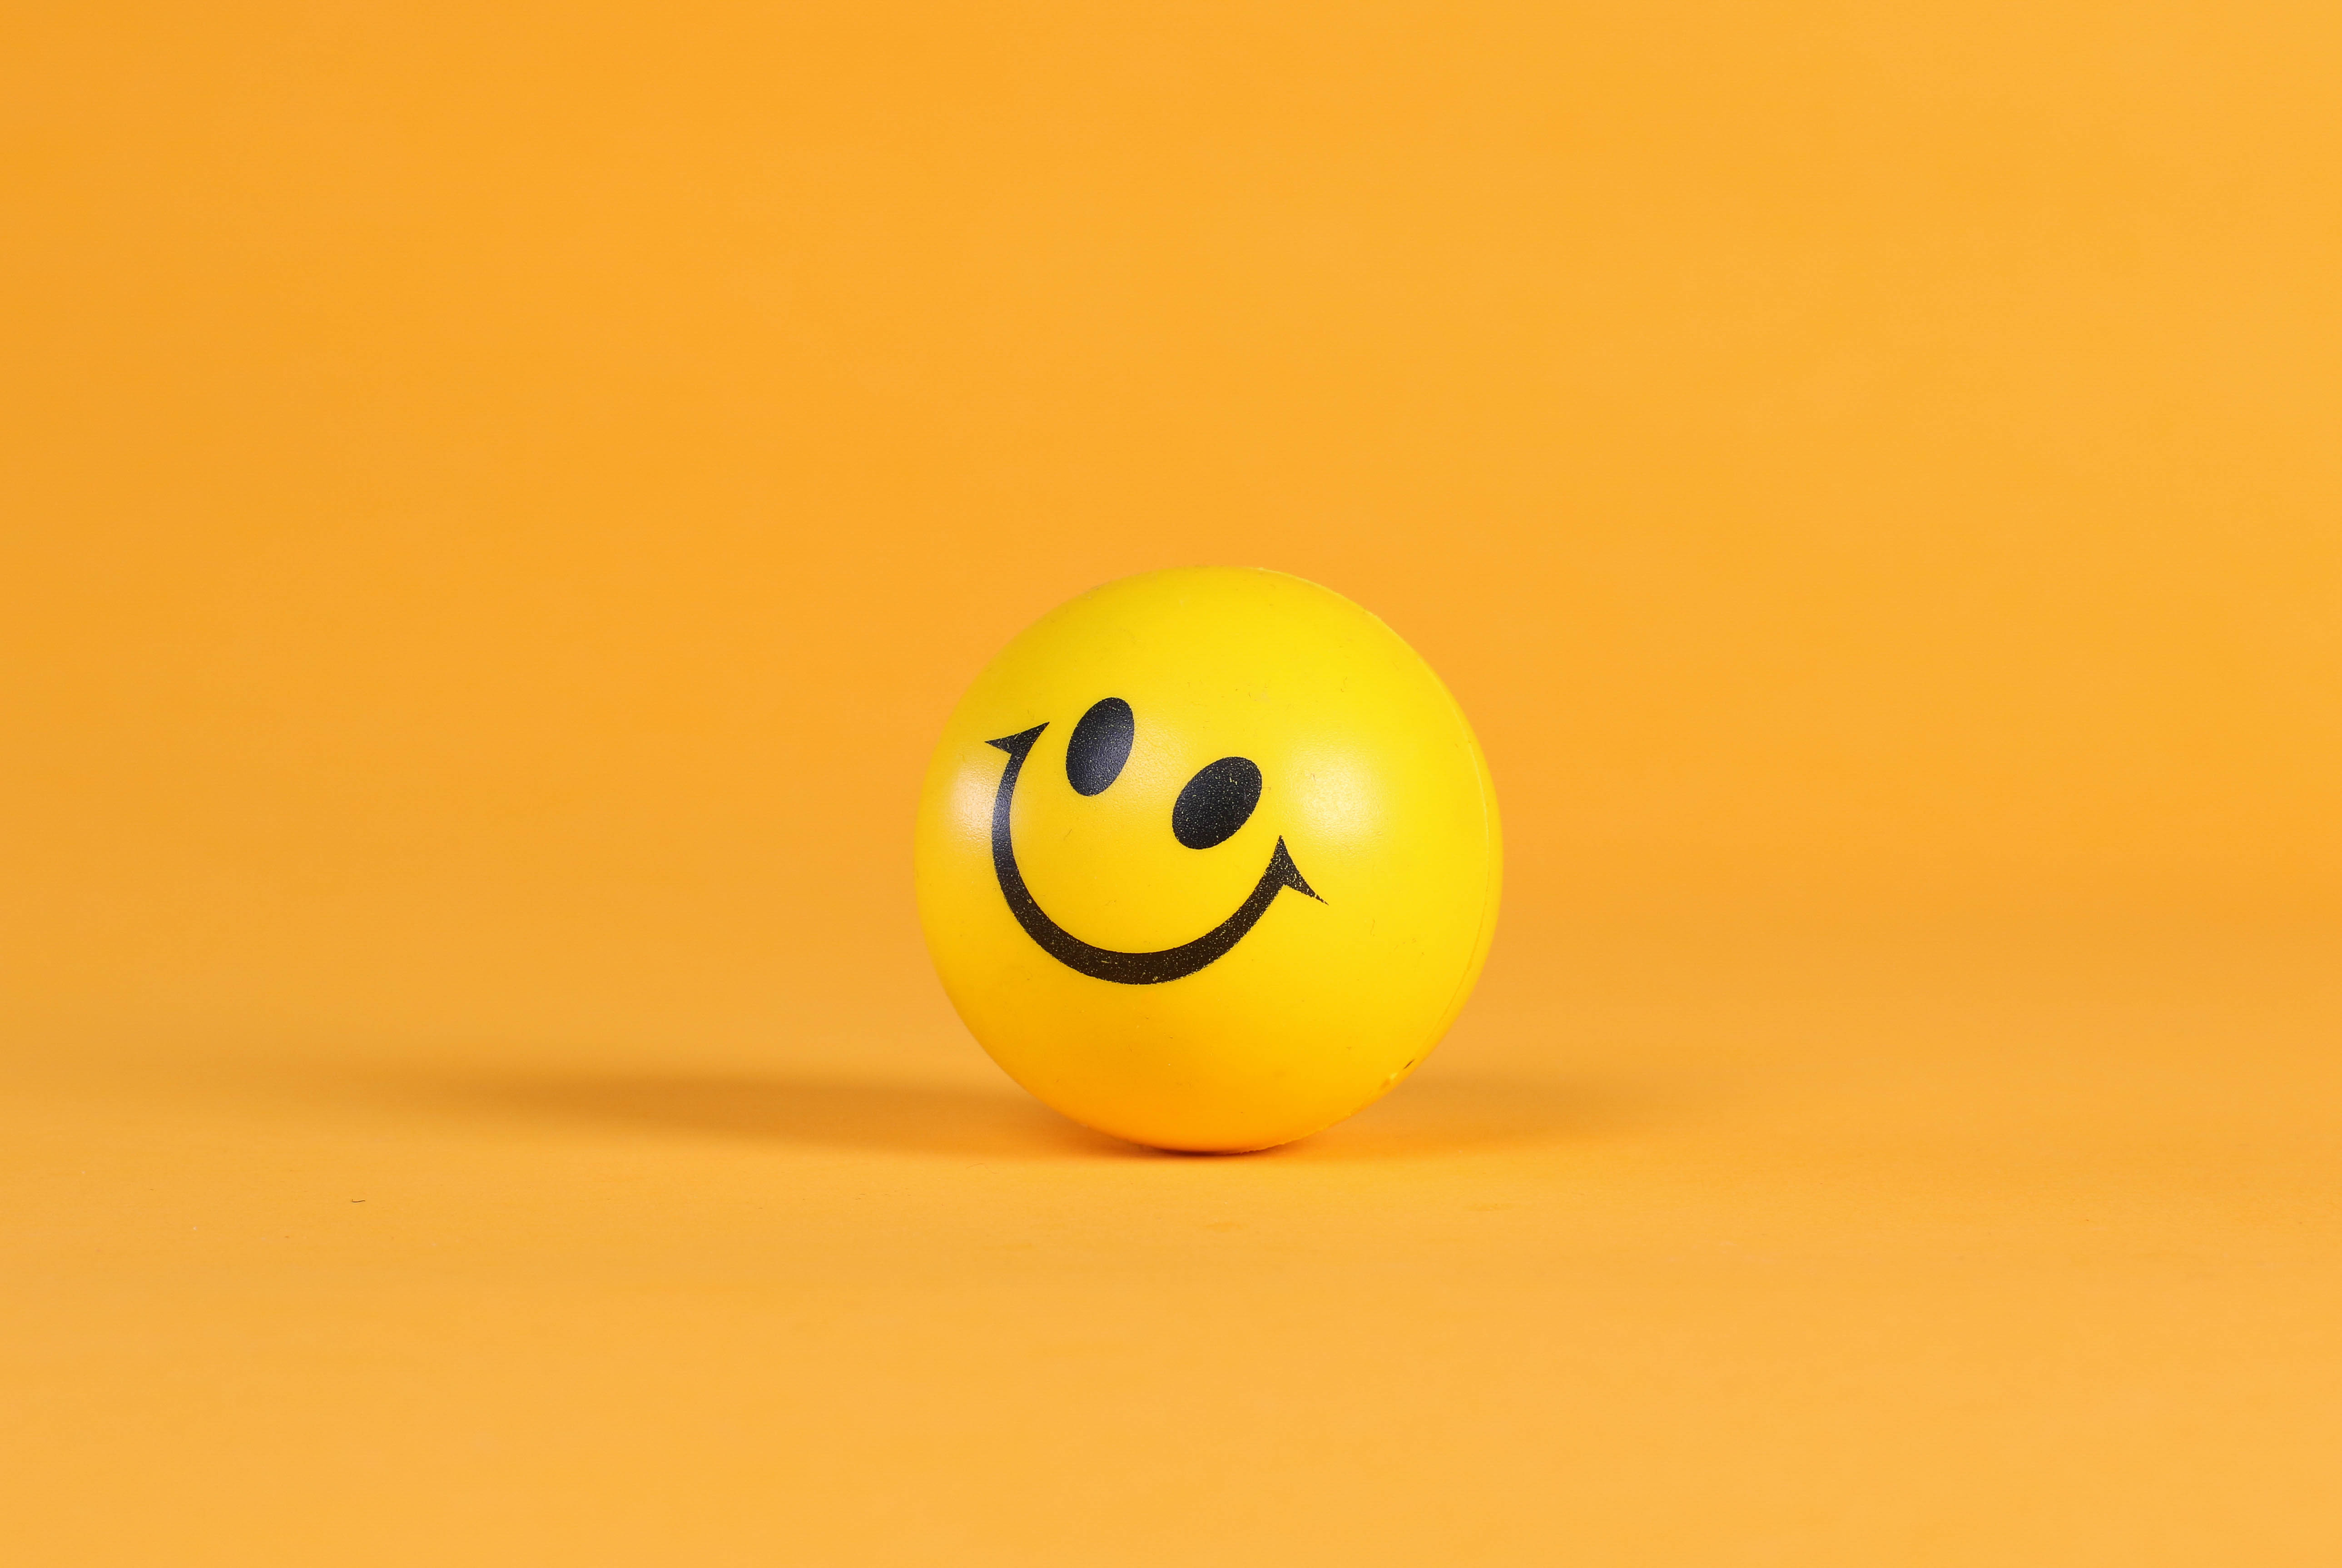 156862 Screensavers and Wallpapers Smile for phone. Download Smiley, Miscellanea, Miscellaneous, Smile, Ball, Emoticon pictures for free